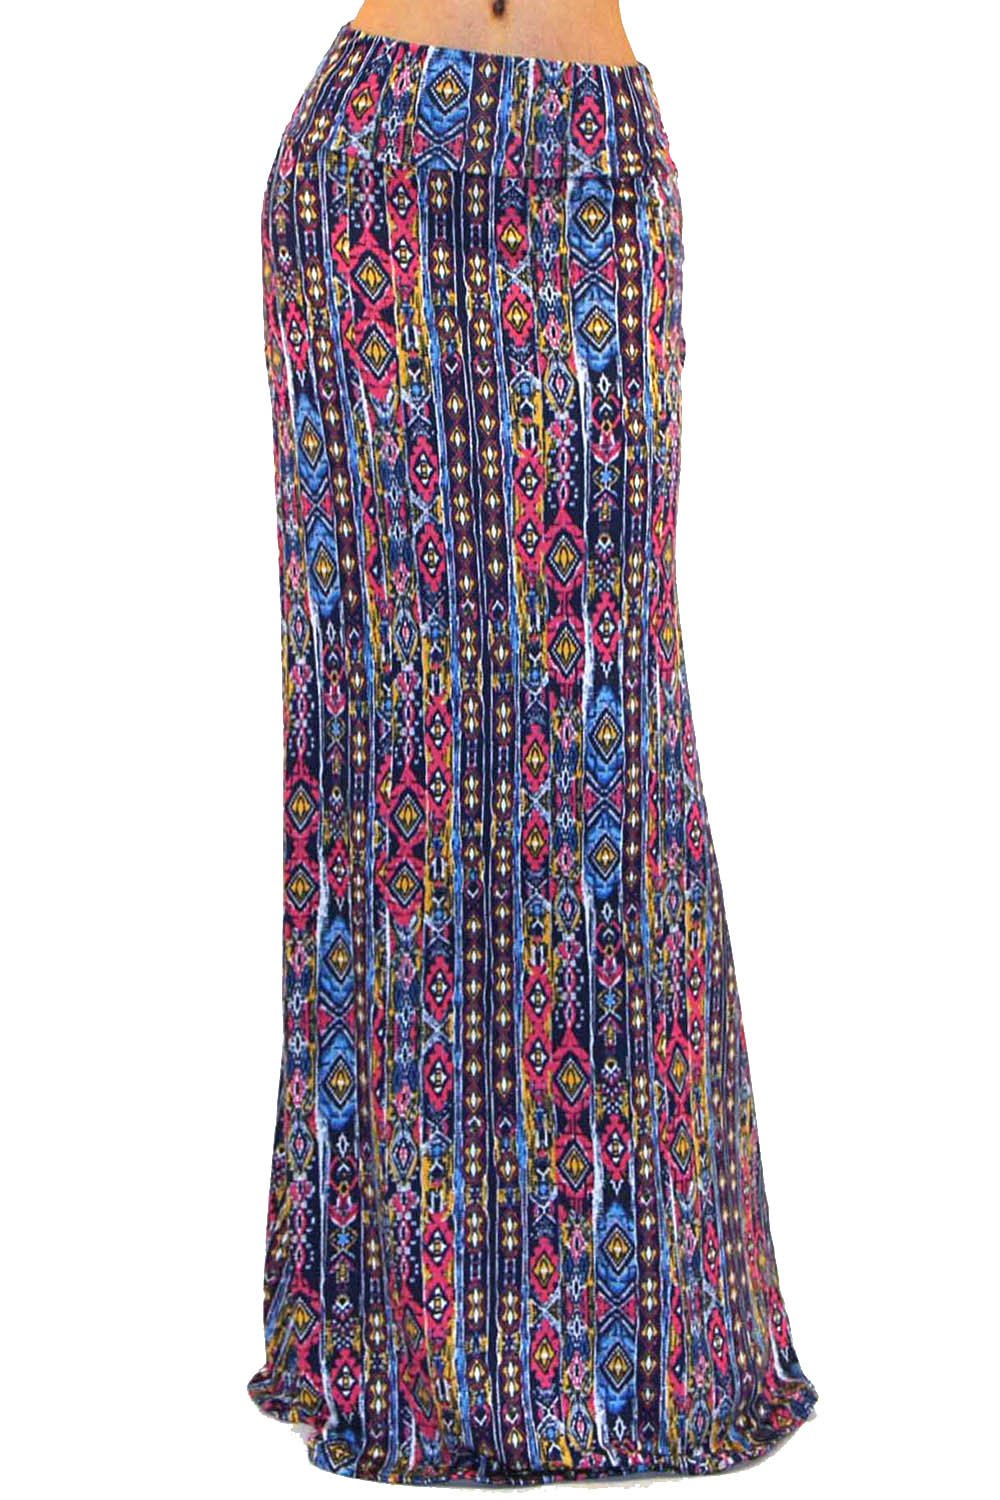 Vivicastle Women's Colorful Printed Fold Over Waist Long Maxi Skirt (Small, D44, Multi)